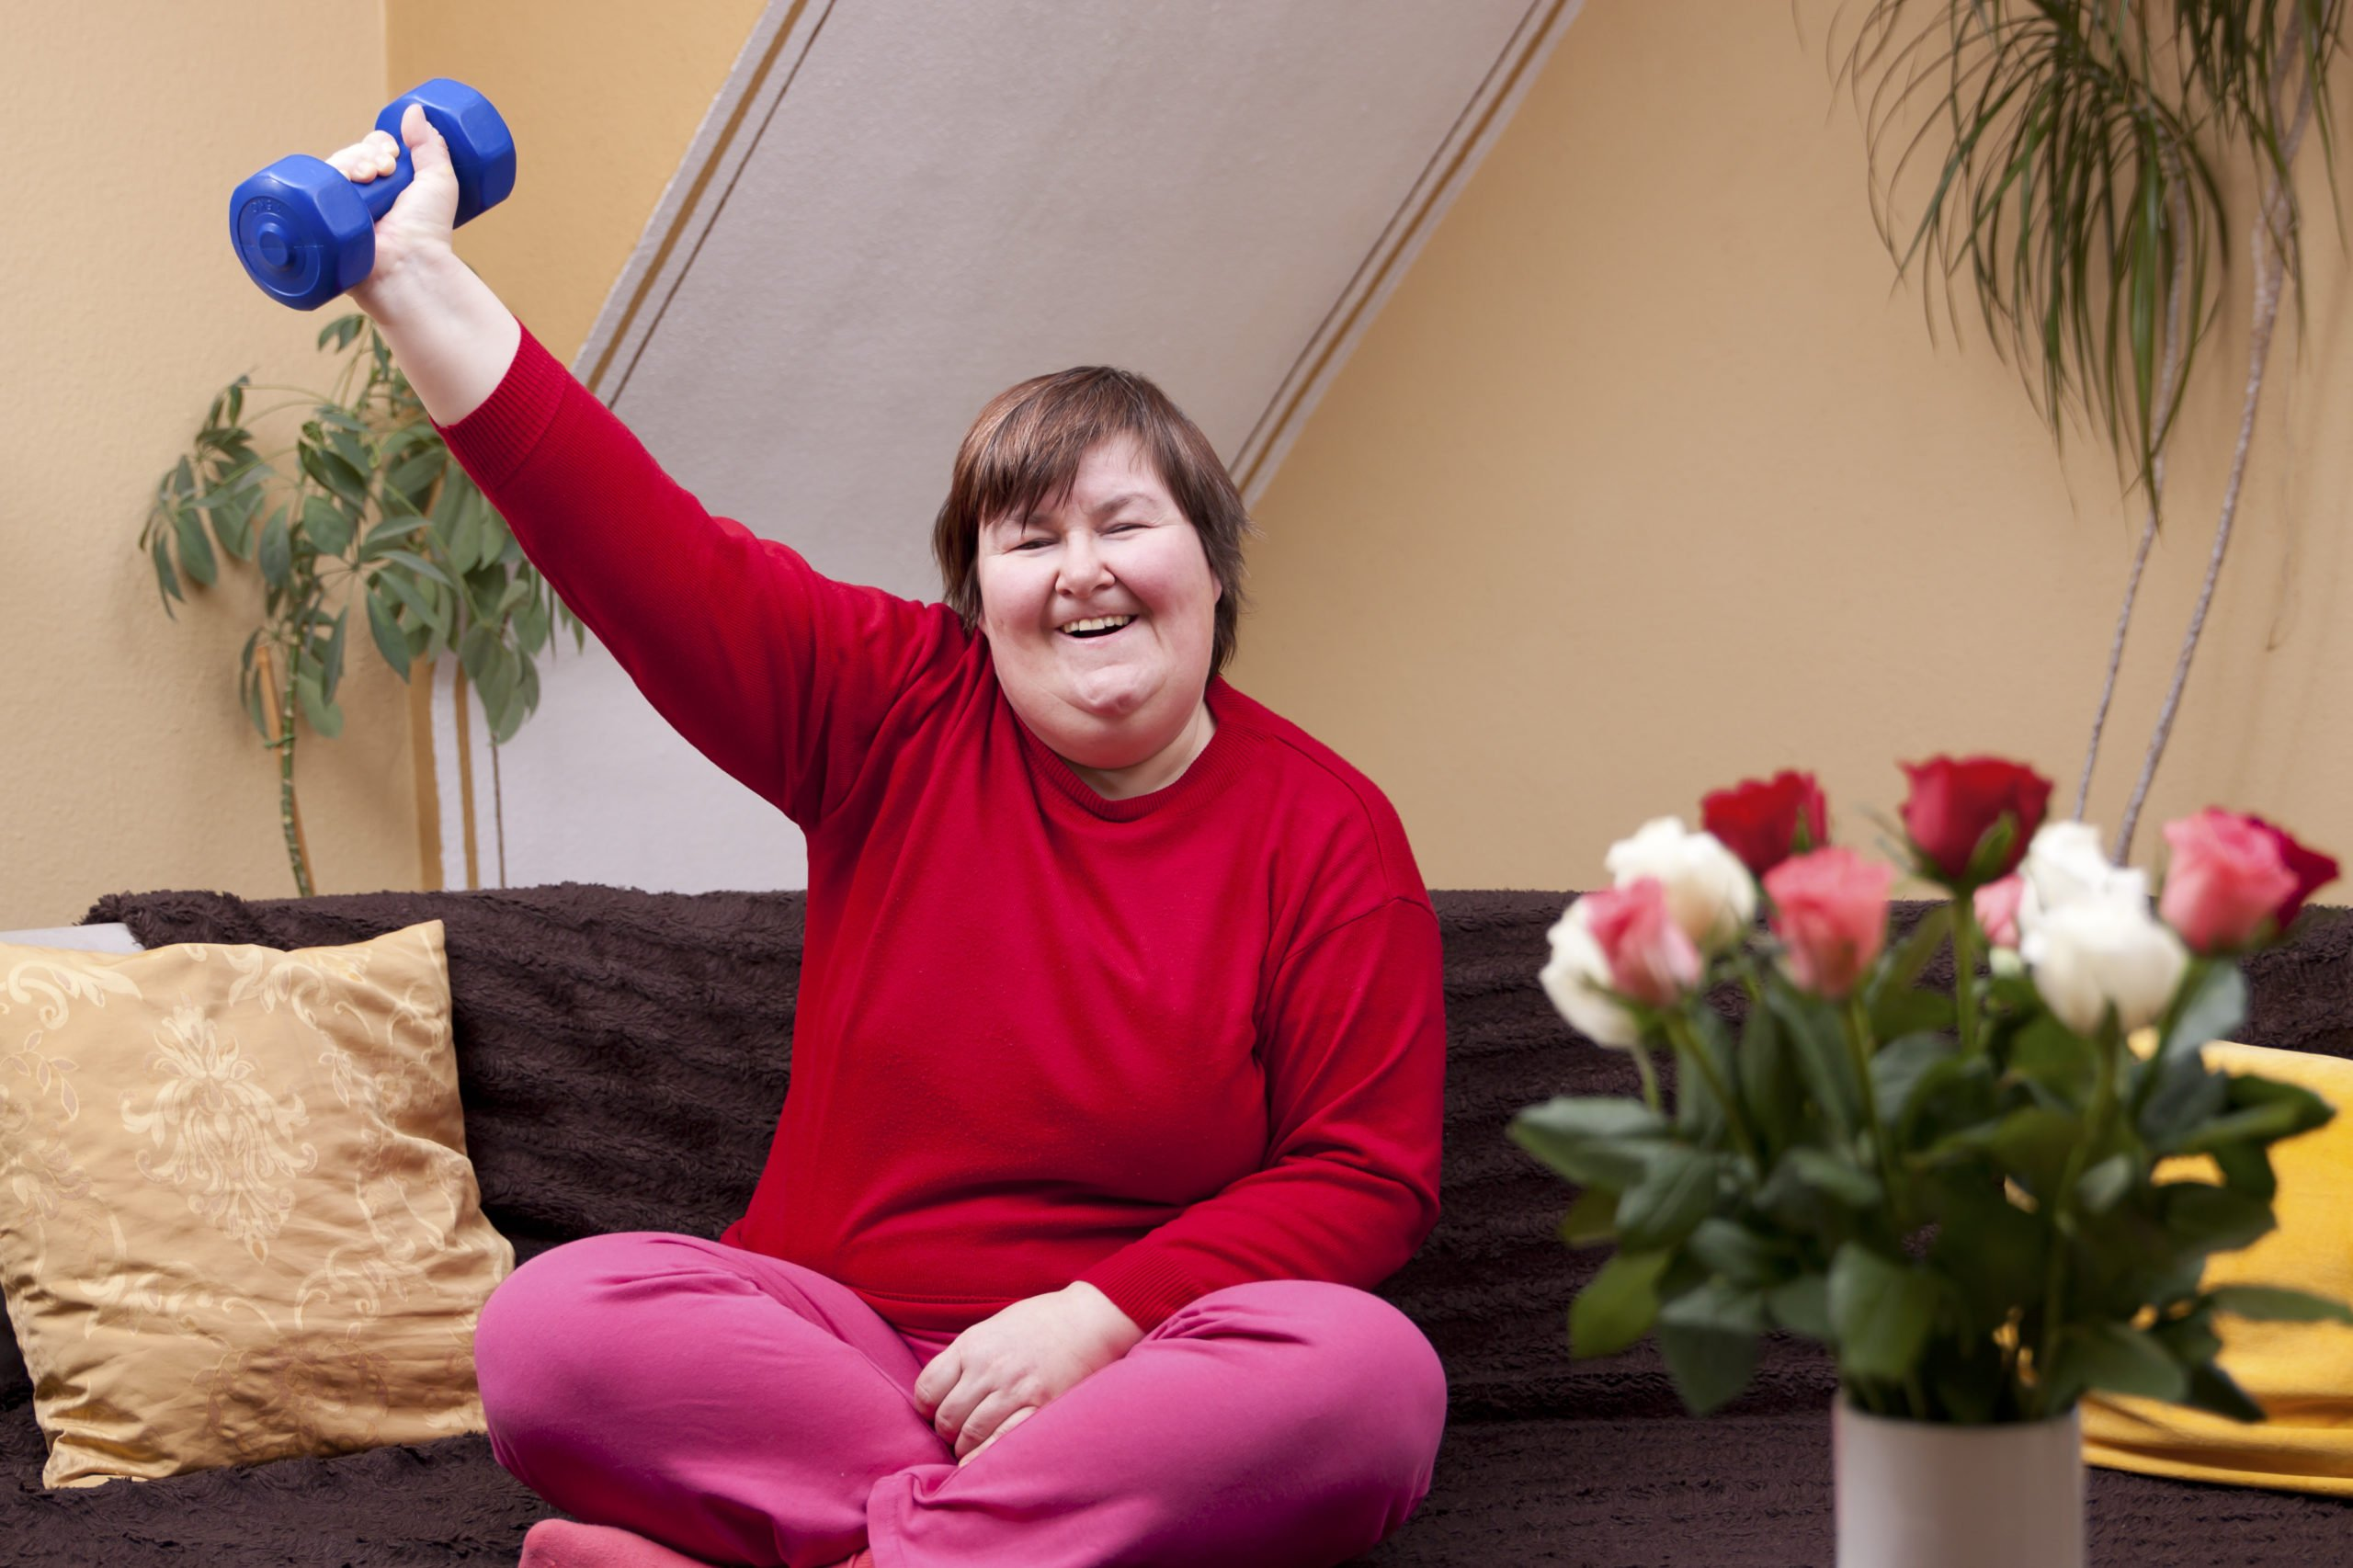 image of smiling woman with down syndrome lifting hand held weight